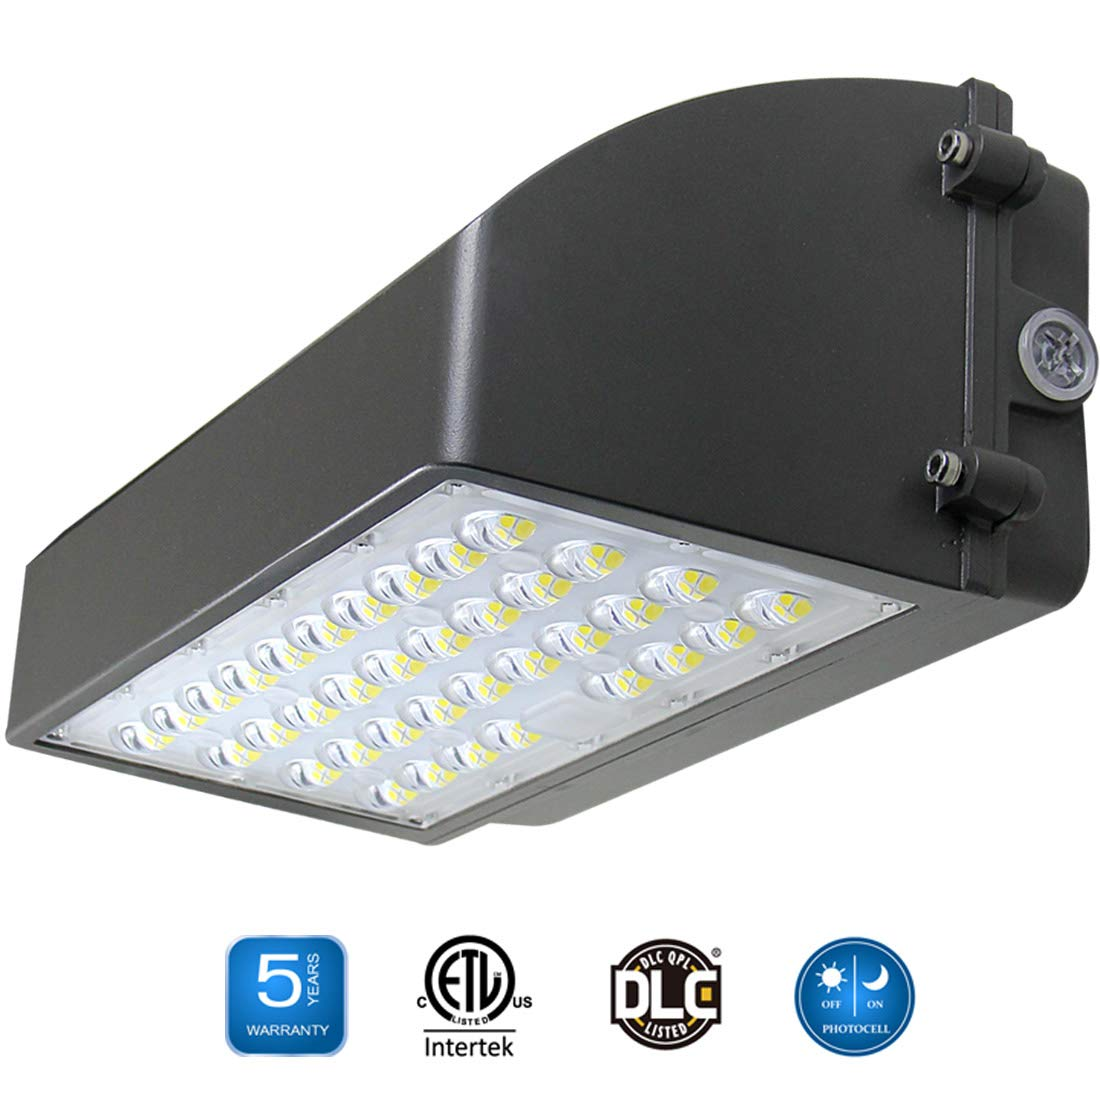 LED Wall Pack Light with Dusk to Dawn Photocell 60W, Full Cutoff LED Outdoor Commercial Industrial Lighting Fixture, Daylight 5000K IP65 Waterproof ETL DLC Listed 200-300W HPS/MH Replacement